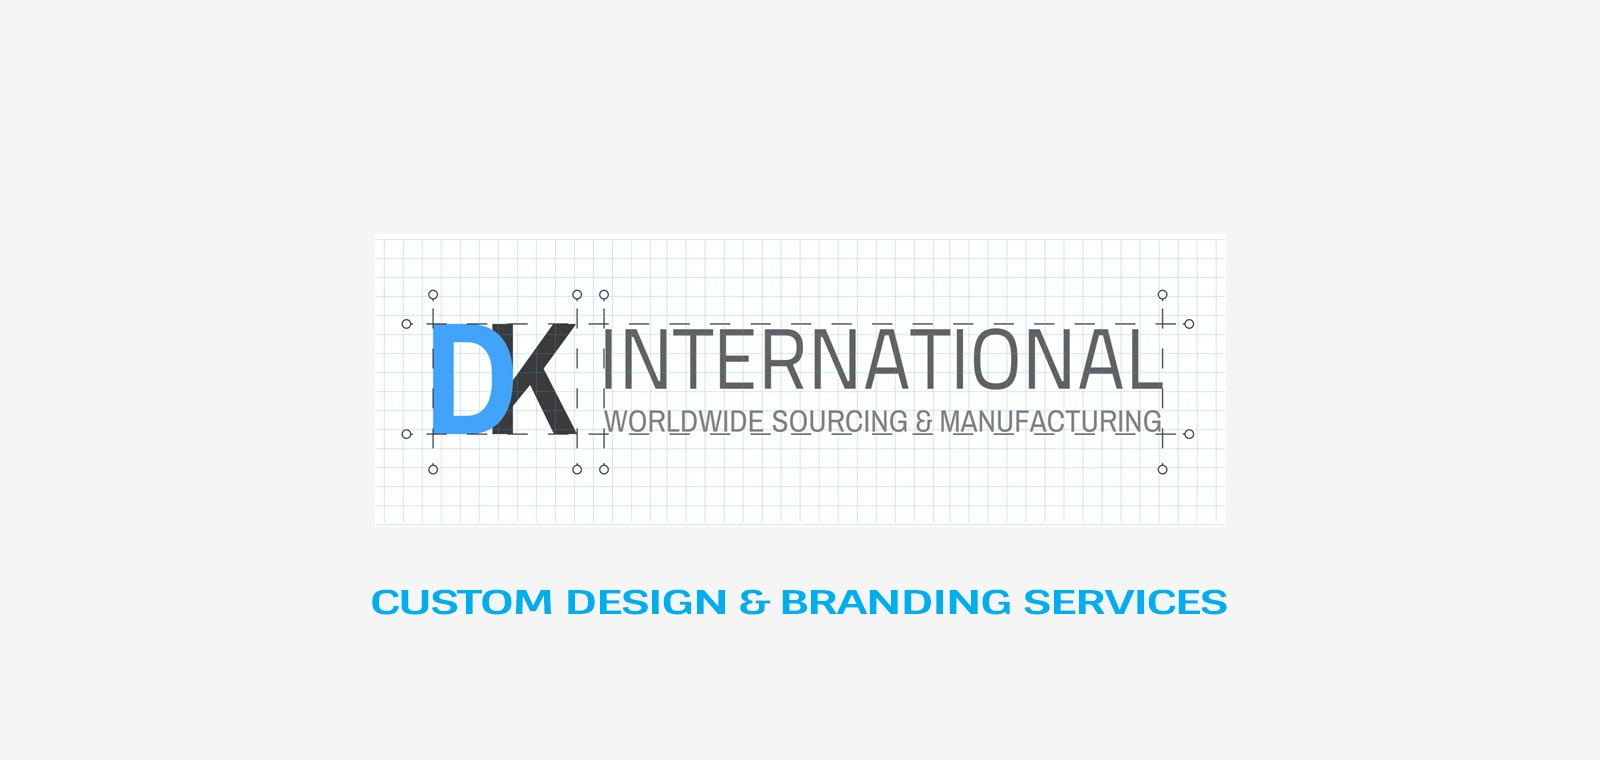 DK - CUSTOM DESIGN AND BRANDING SERVICES